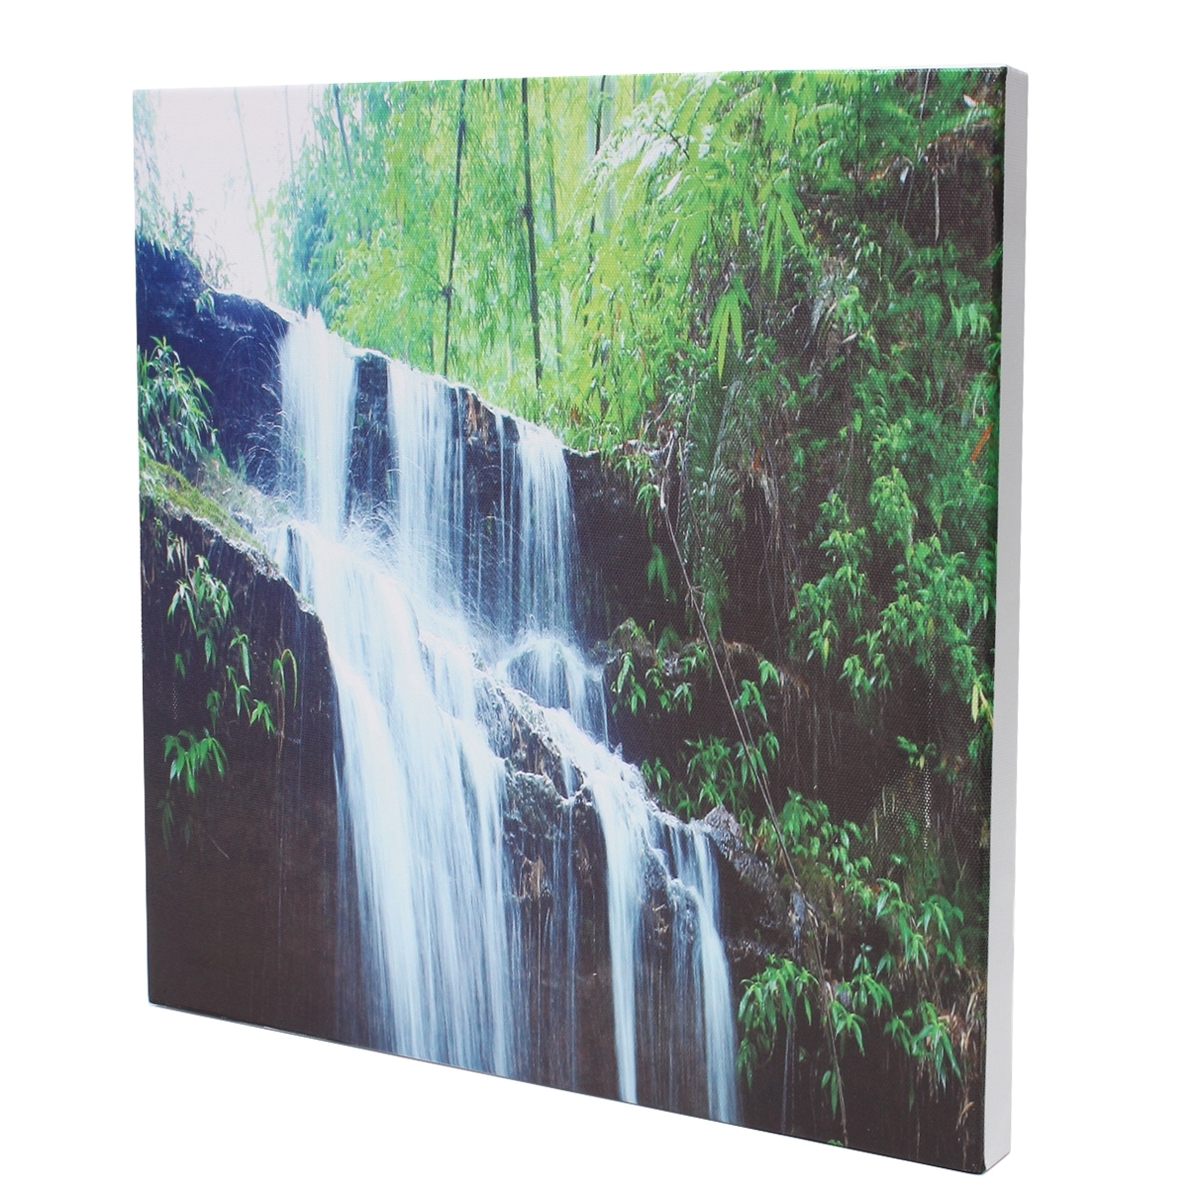 Waterfall Wall Art For Popular 3 Cascade Large Waterfall Framed Print Painting Canvas Wall Art (View 2 of 15)